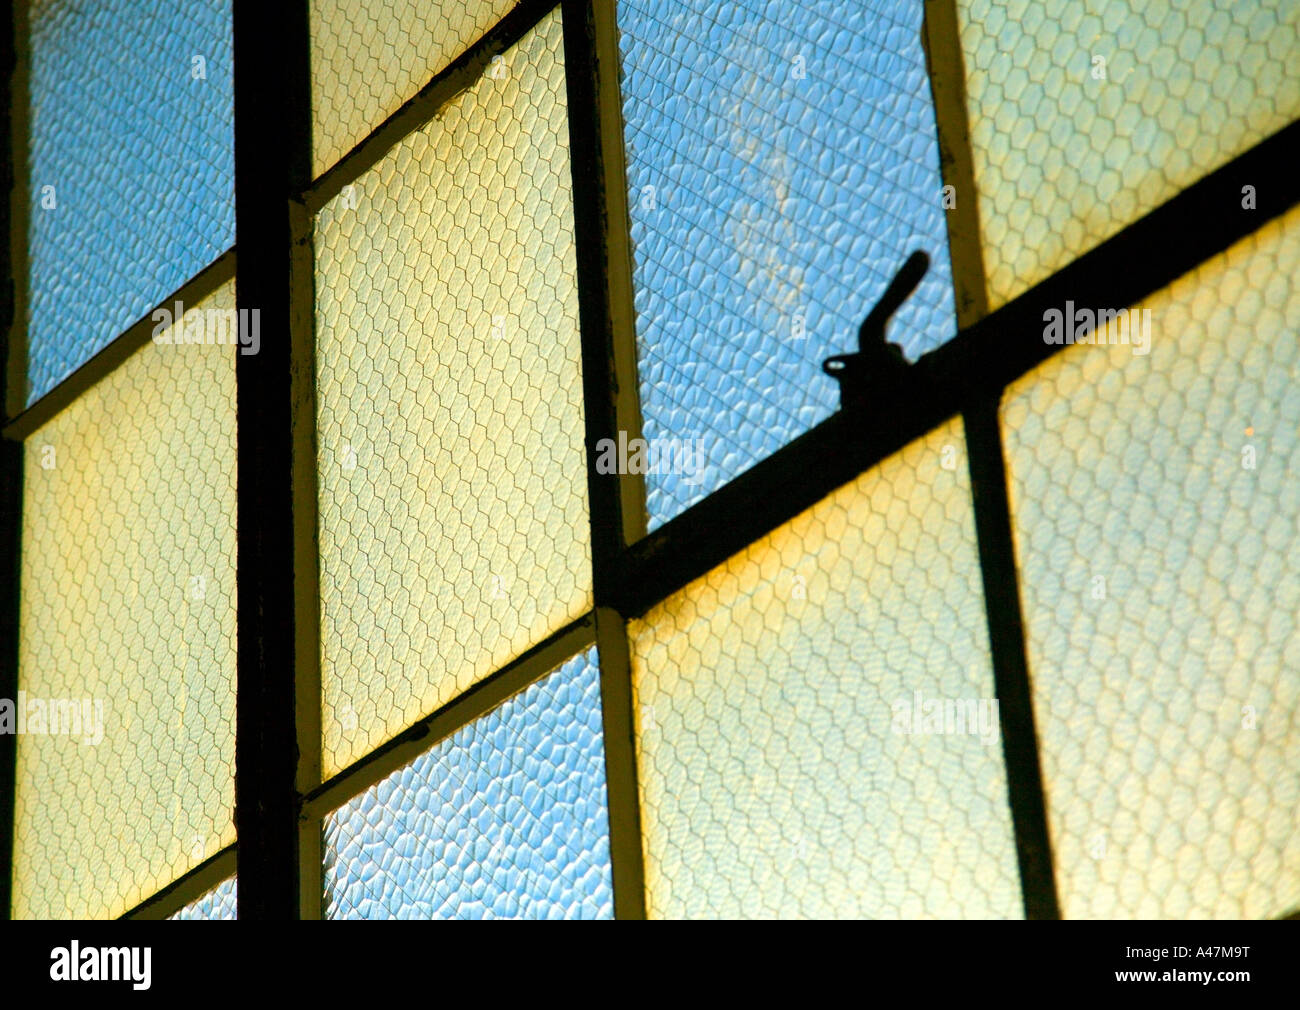 Closeup of reinforced windows - Stock Image